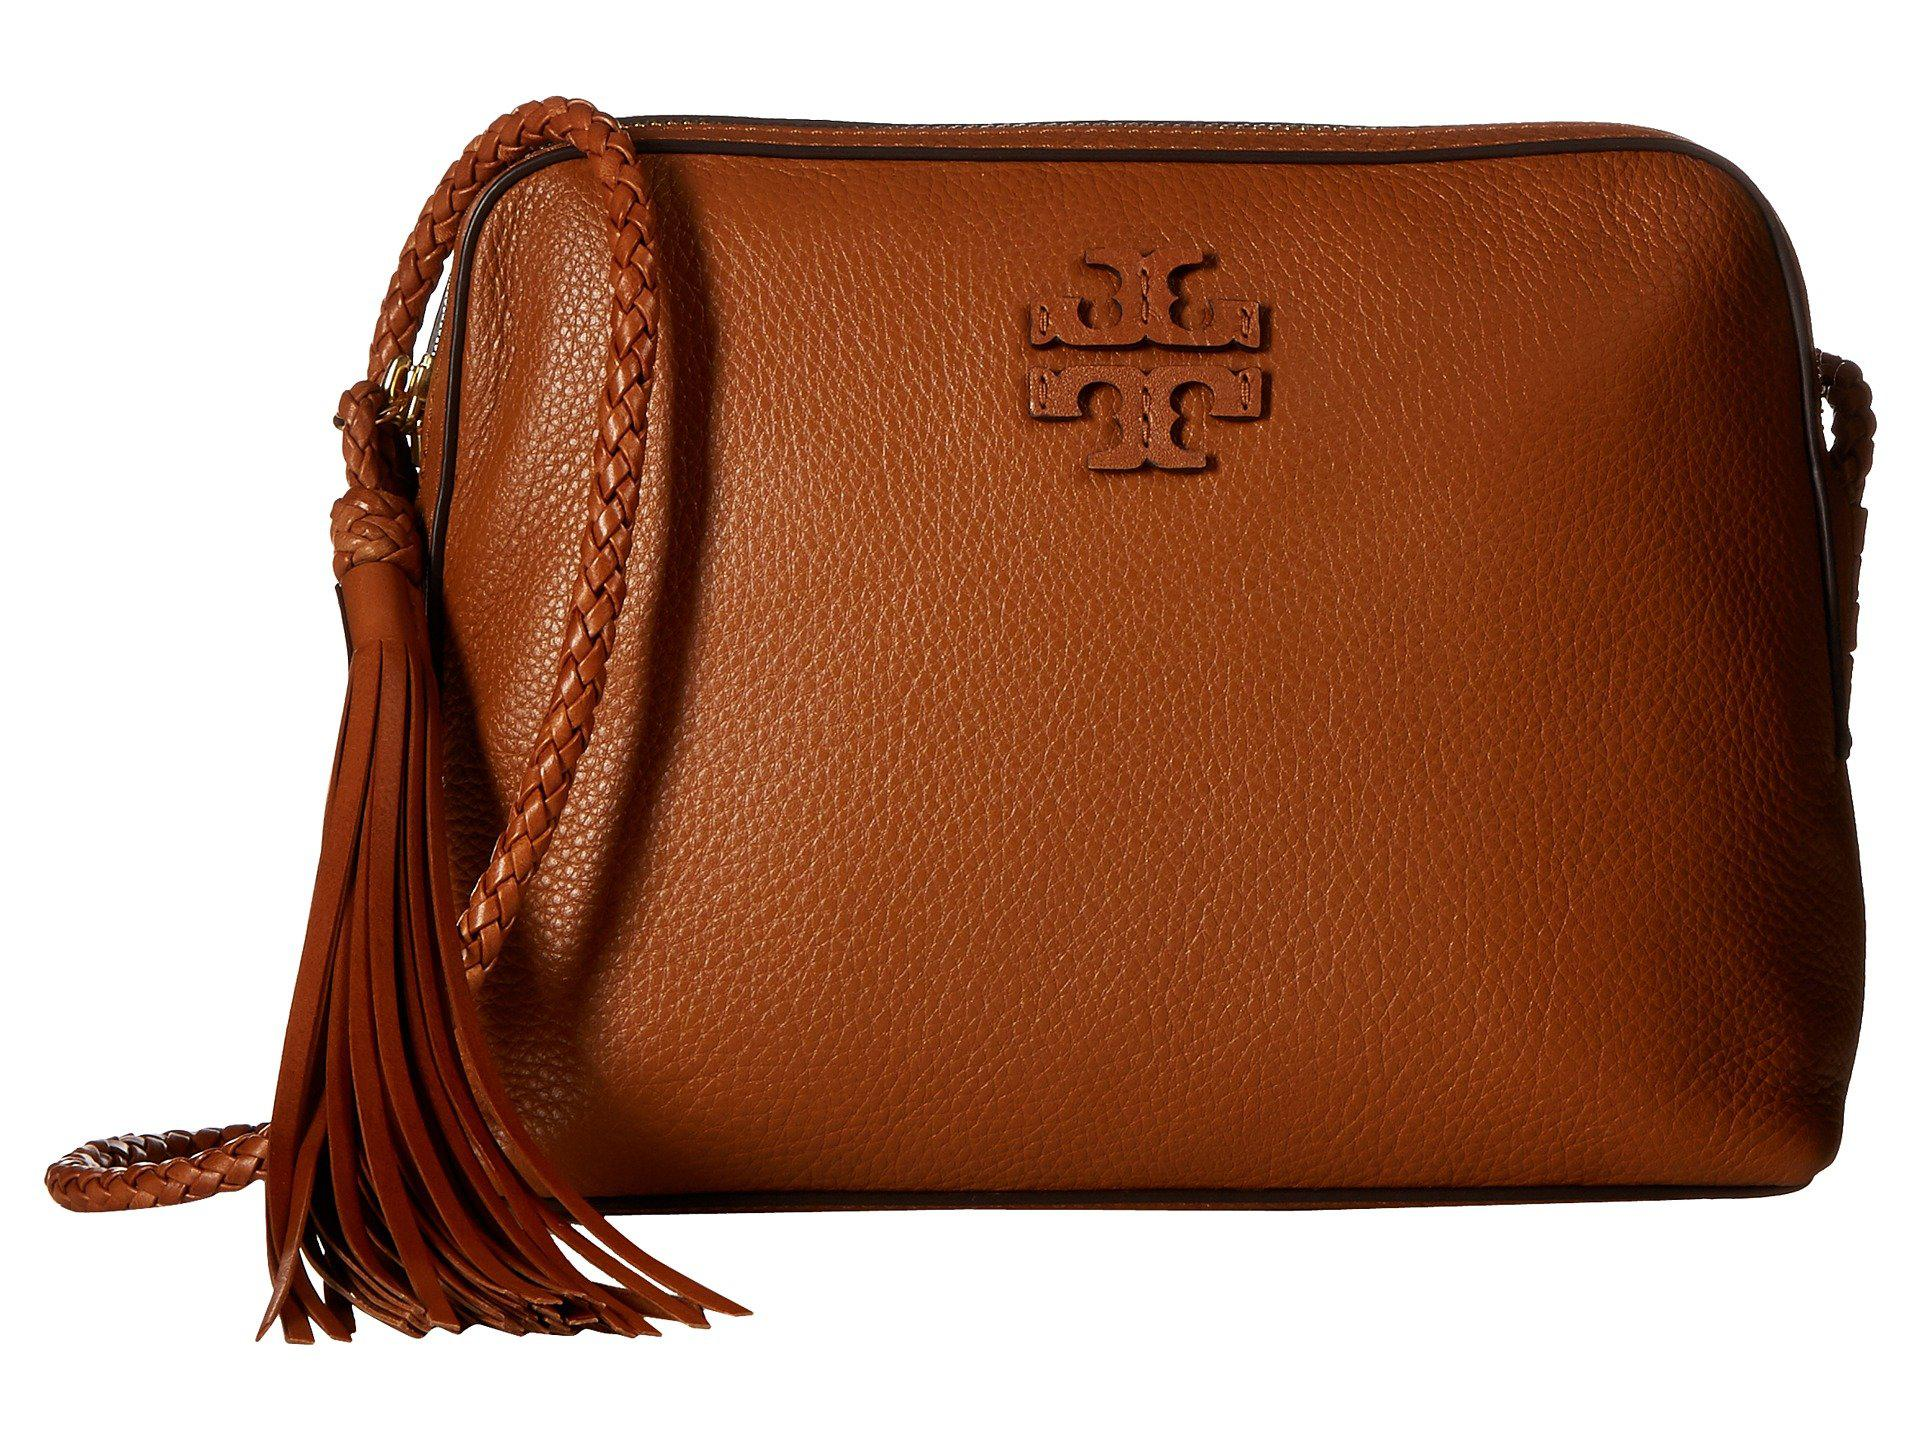 b502aedfc29 Lyst - Tory Burch Taylor Camera Bag in Brown